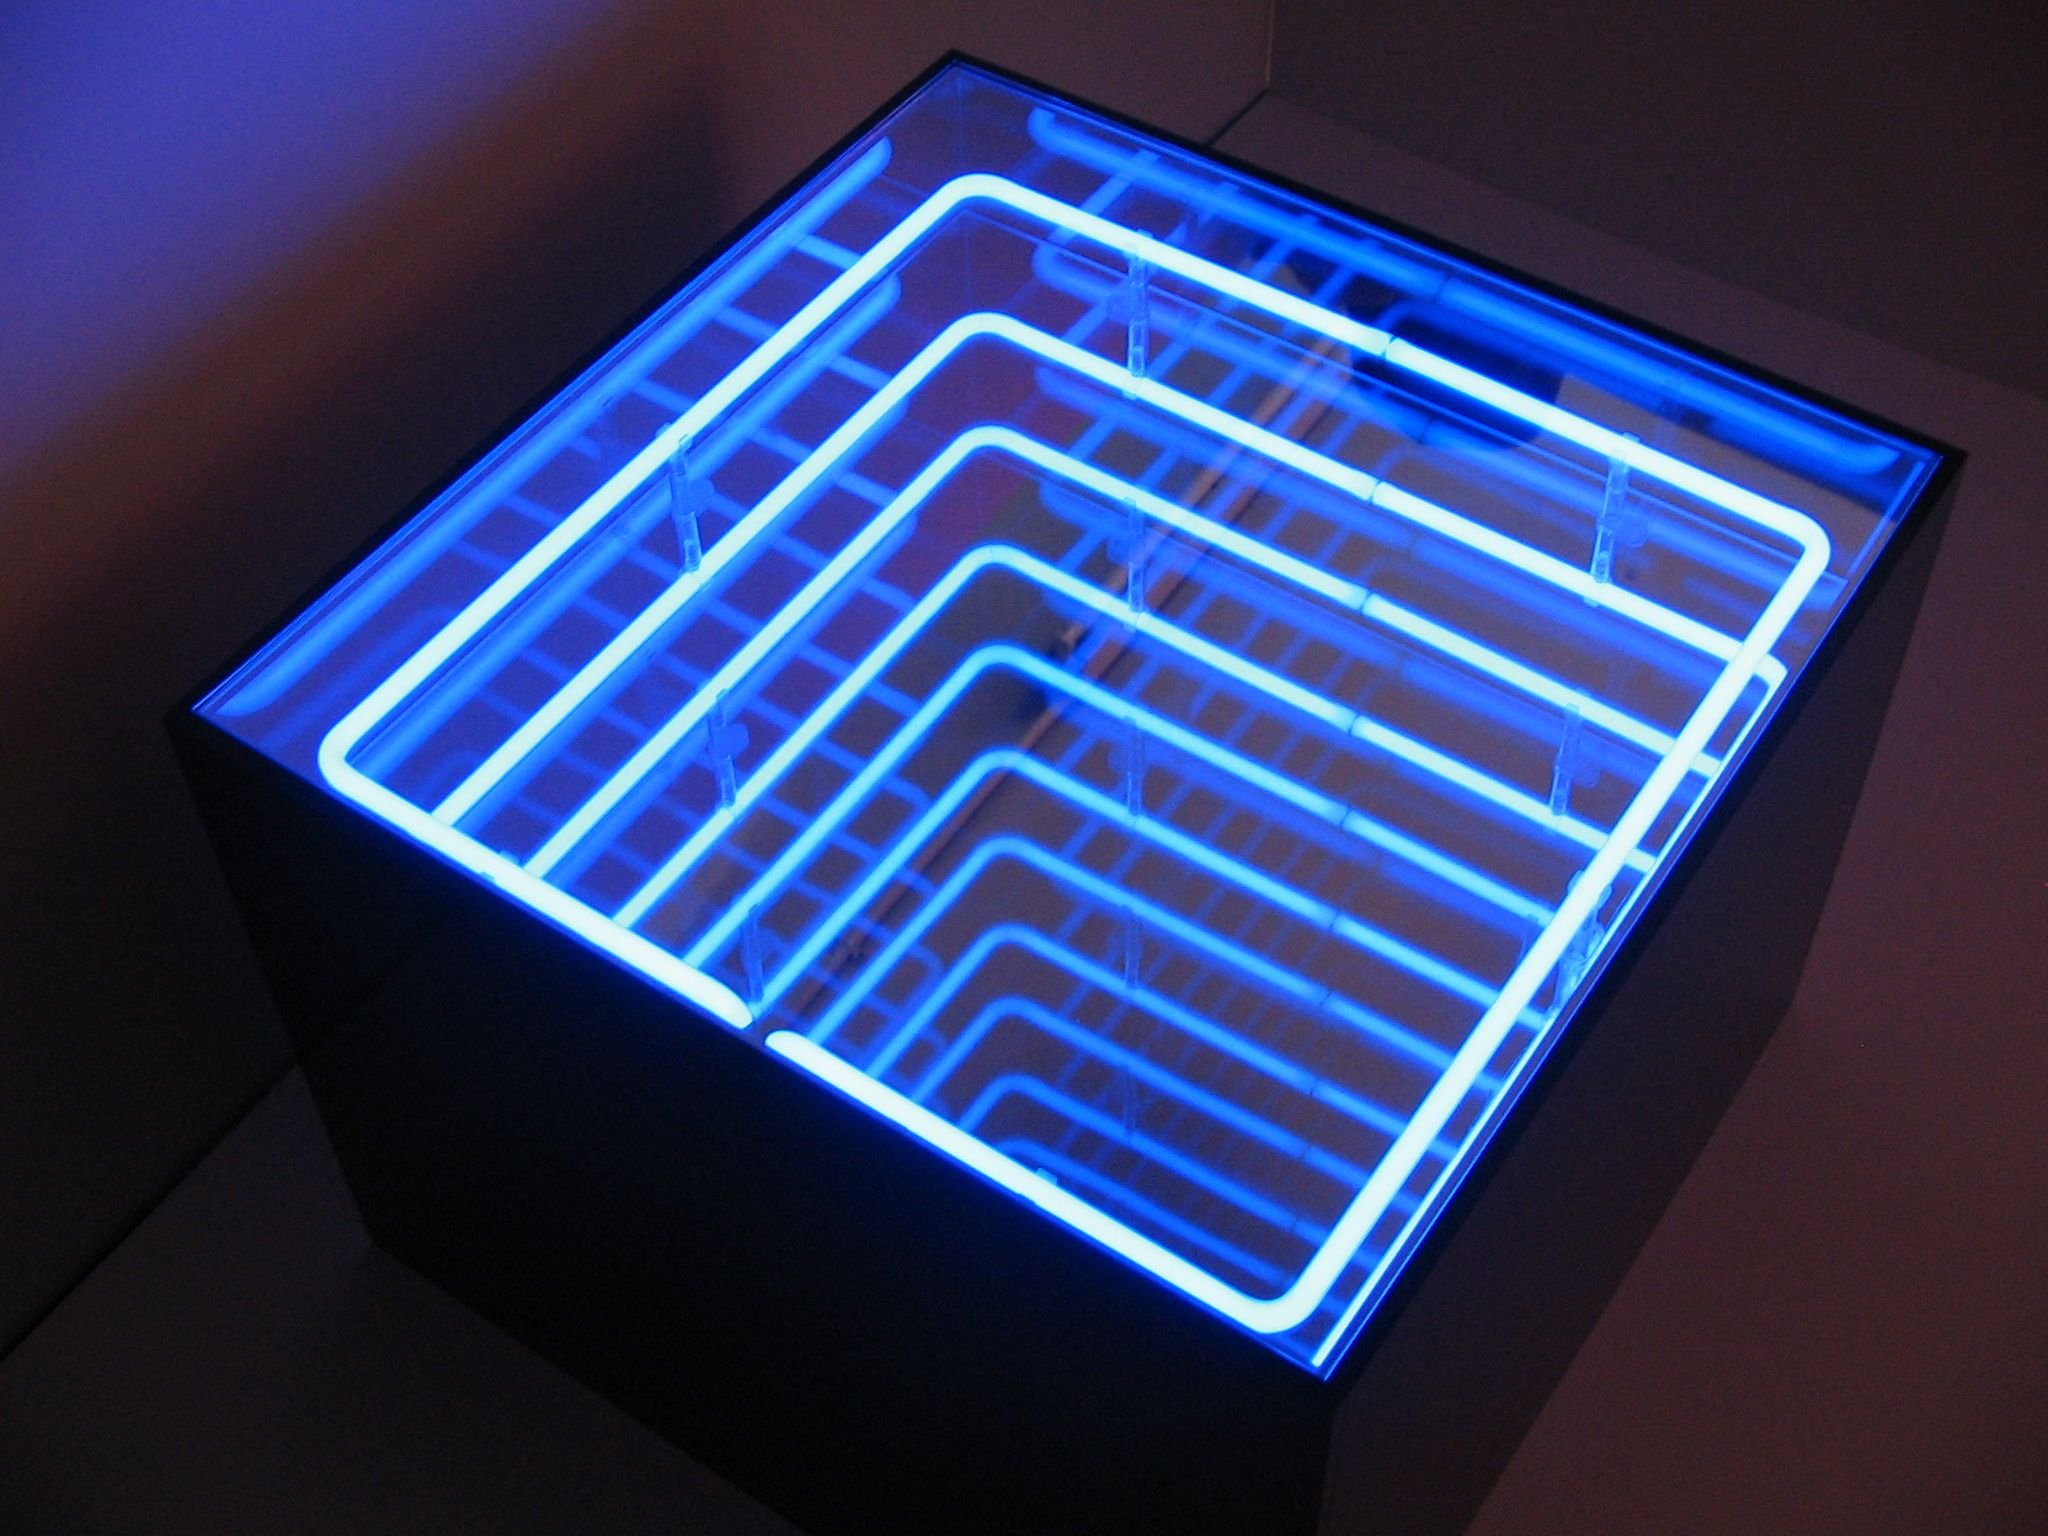 Here At Neon Creations We Have A Wide Range Of Neon Available To Purchase Browse All Products And Call 01204 6558 Infinity Table Two Way Mirror Neon Sculpture